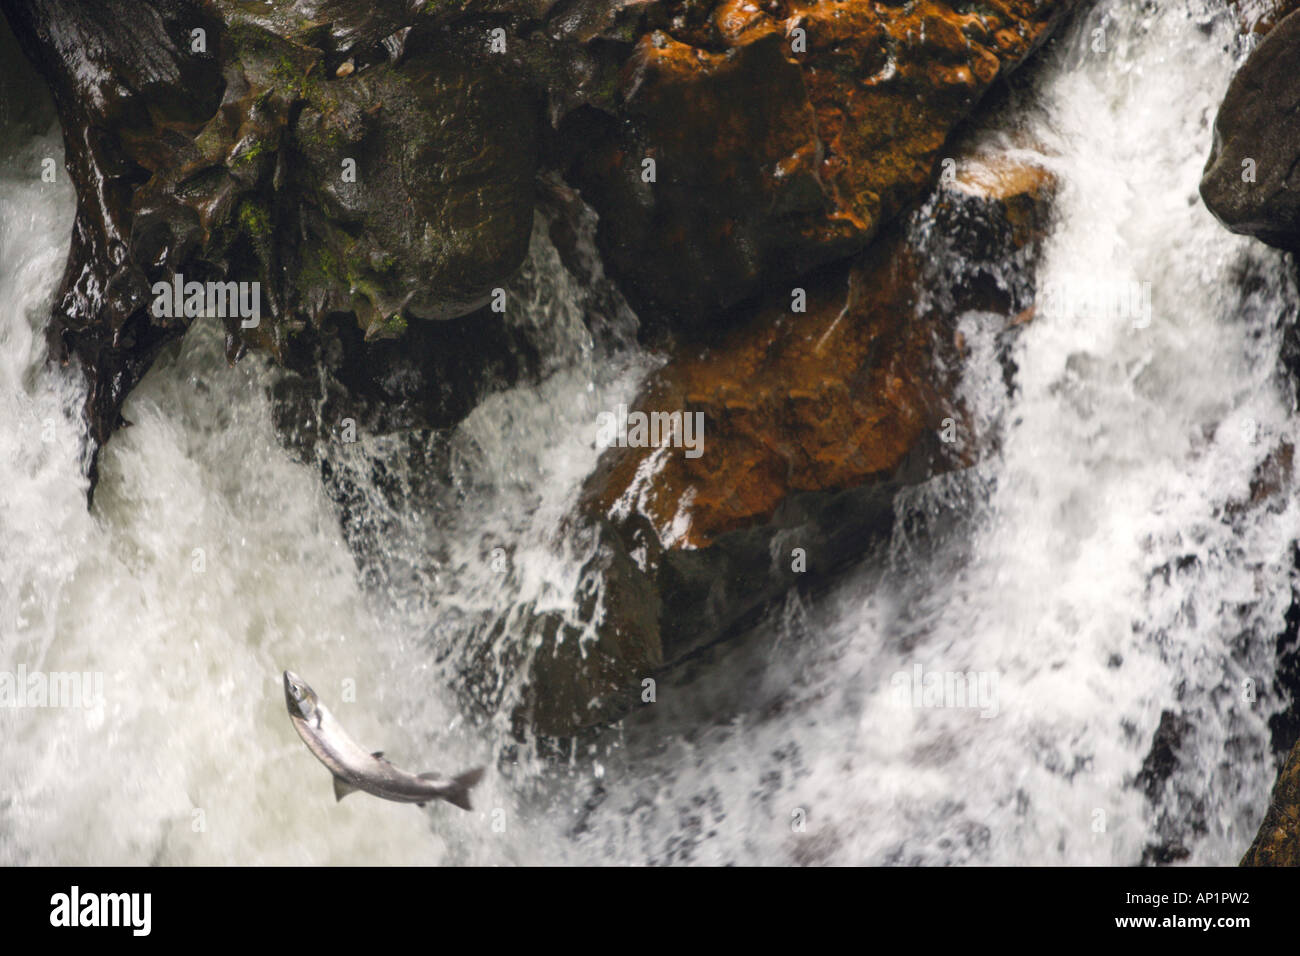 Salmon Leaping In The Black Linn Falls On The River Braan The Hermitage Dunkeld Perthshire Scotland UK - Stock Image